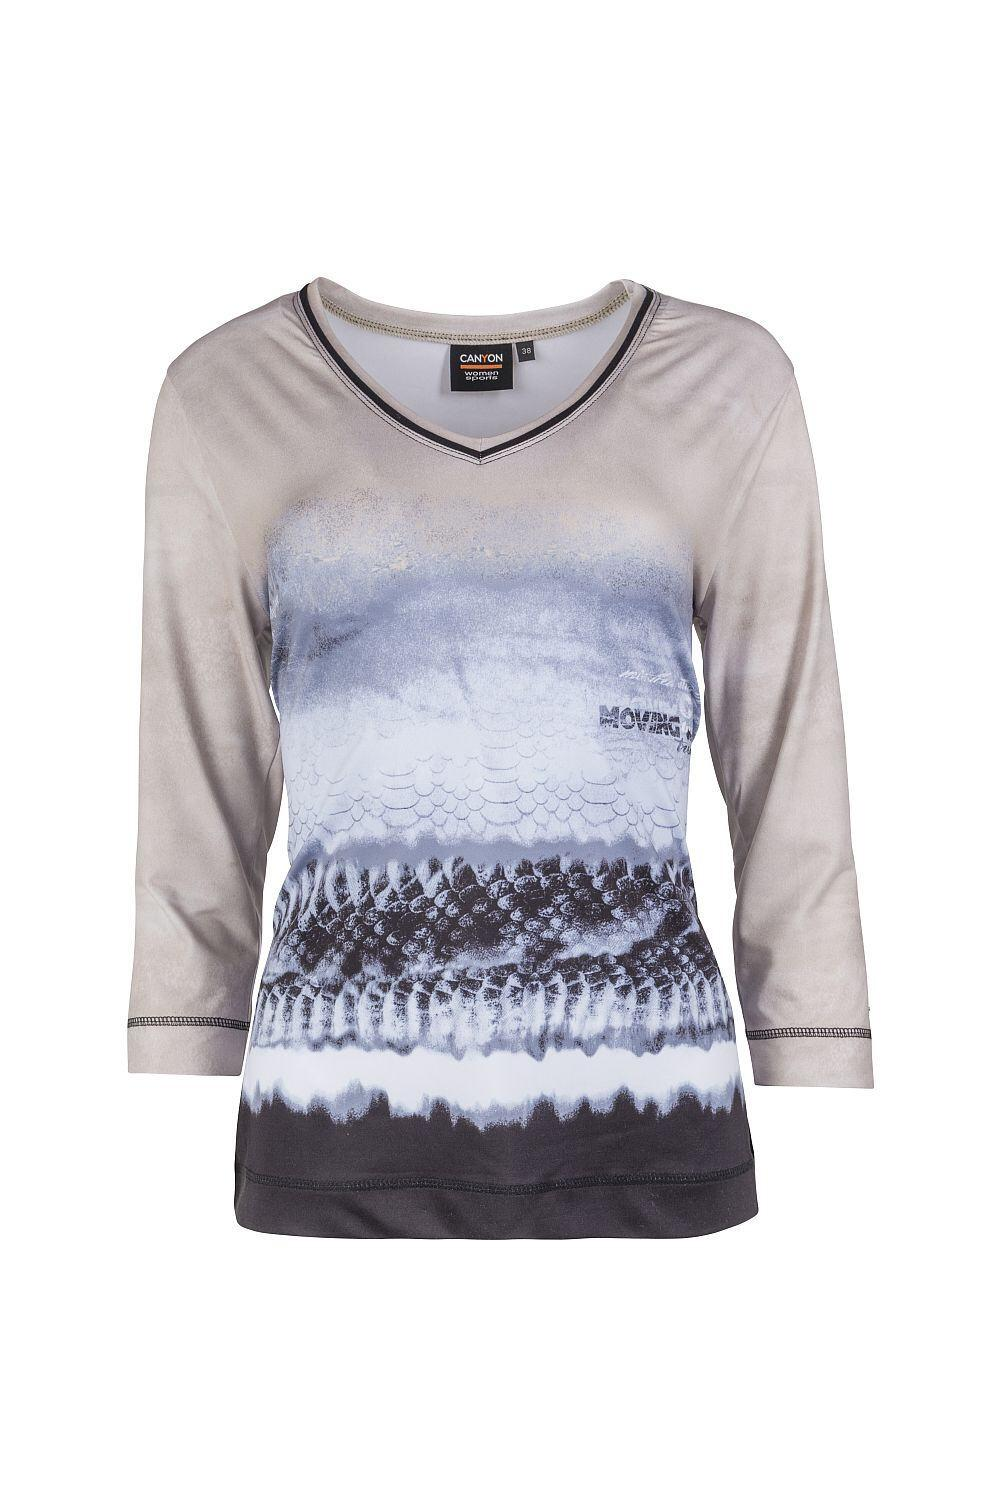 Canyon T-Shirt 3/4 Arm sand-silvergrey